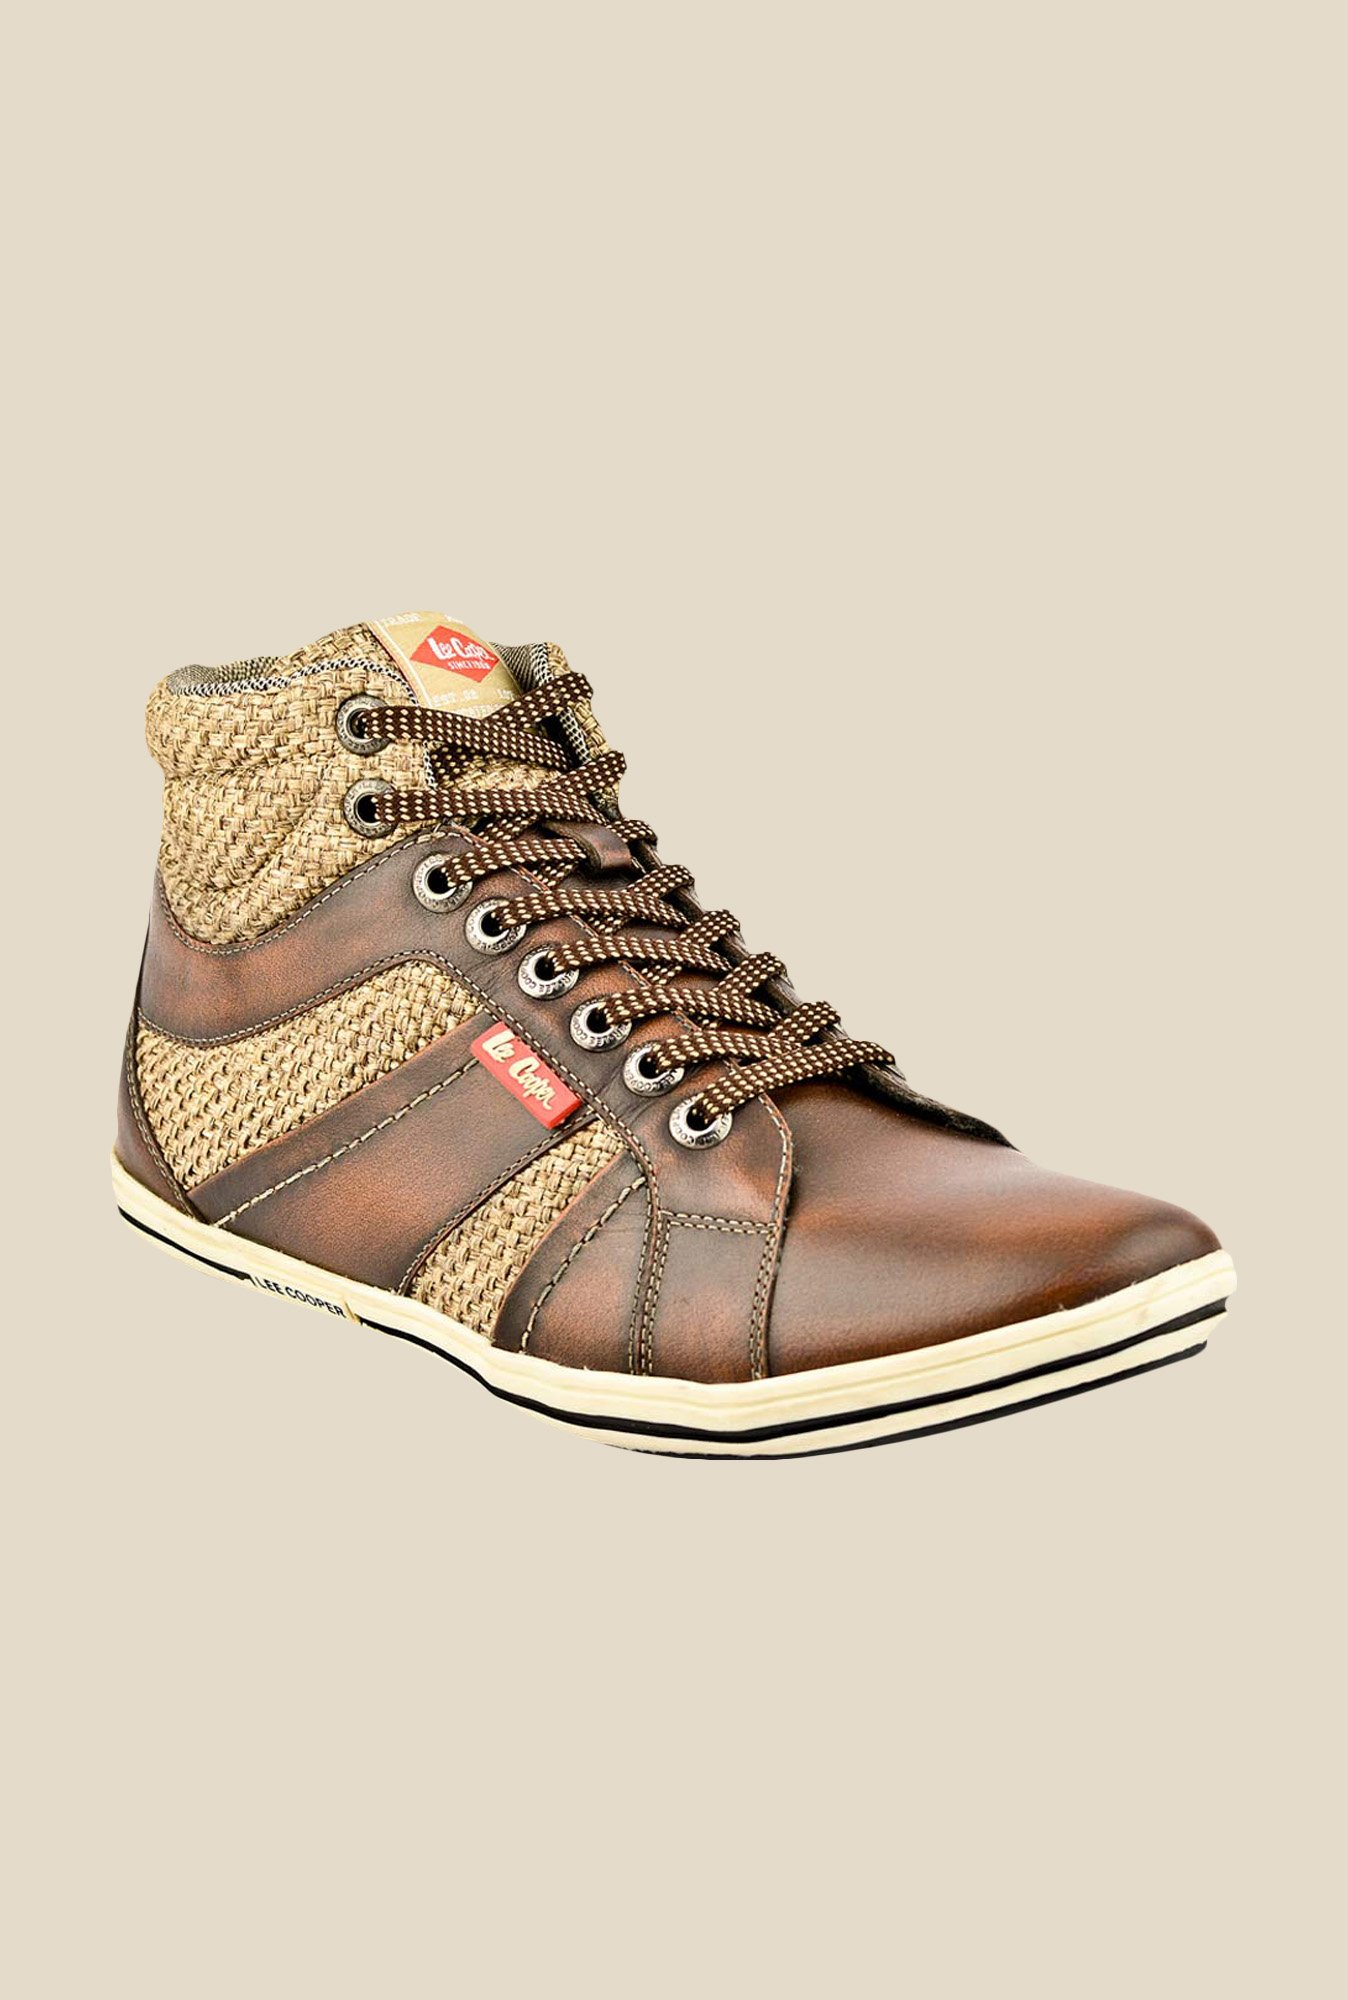 Lee Cooper Brown & Beige Casual Boots